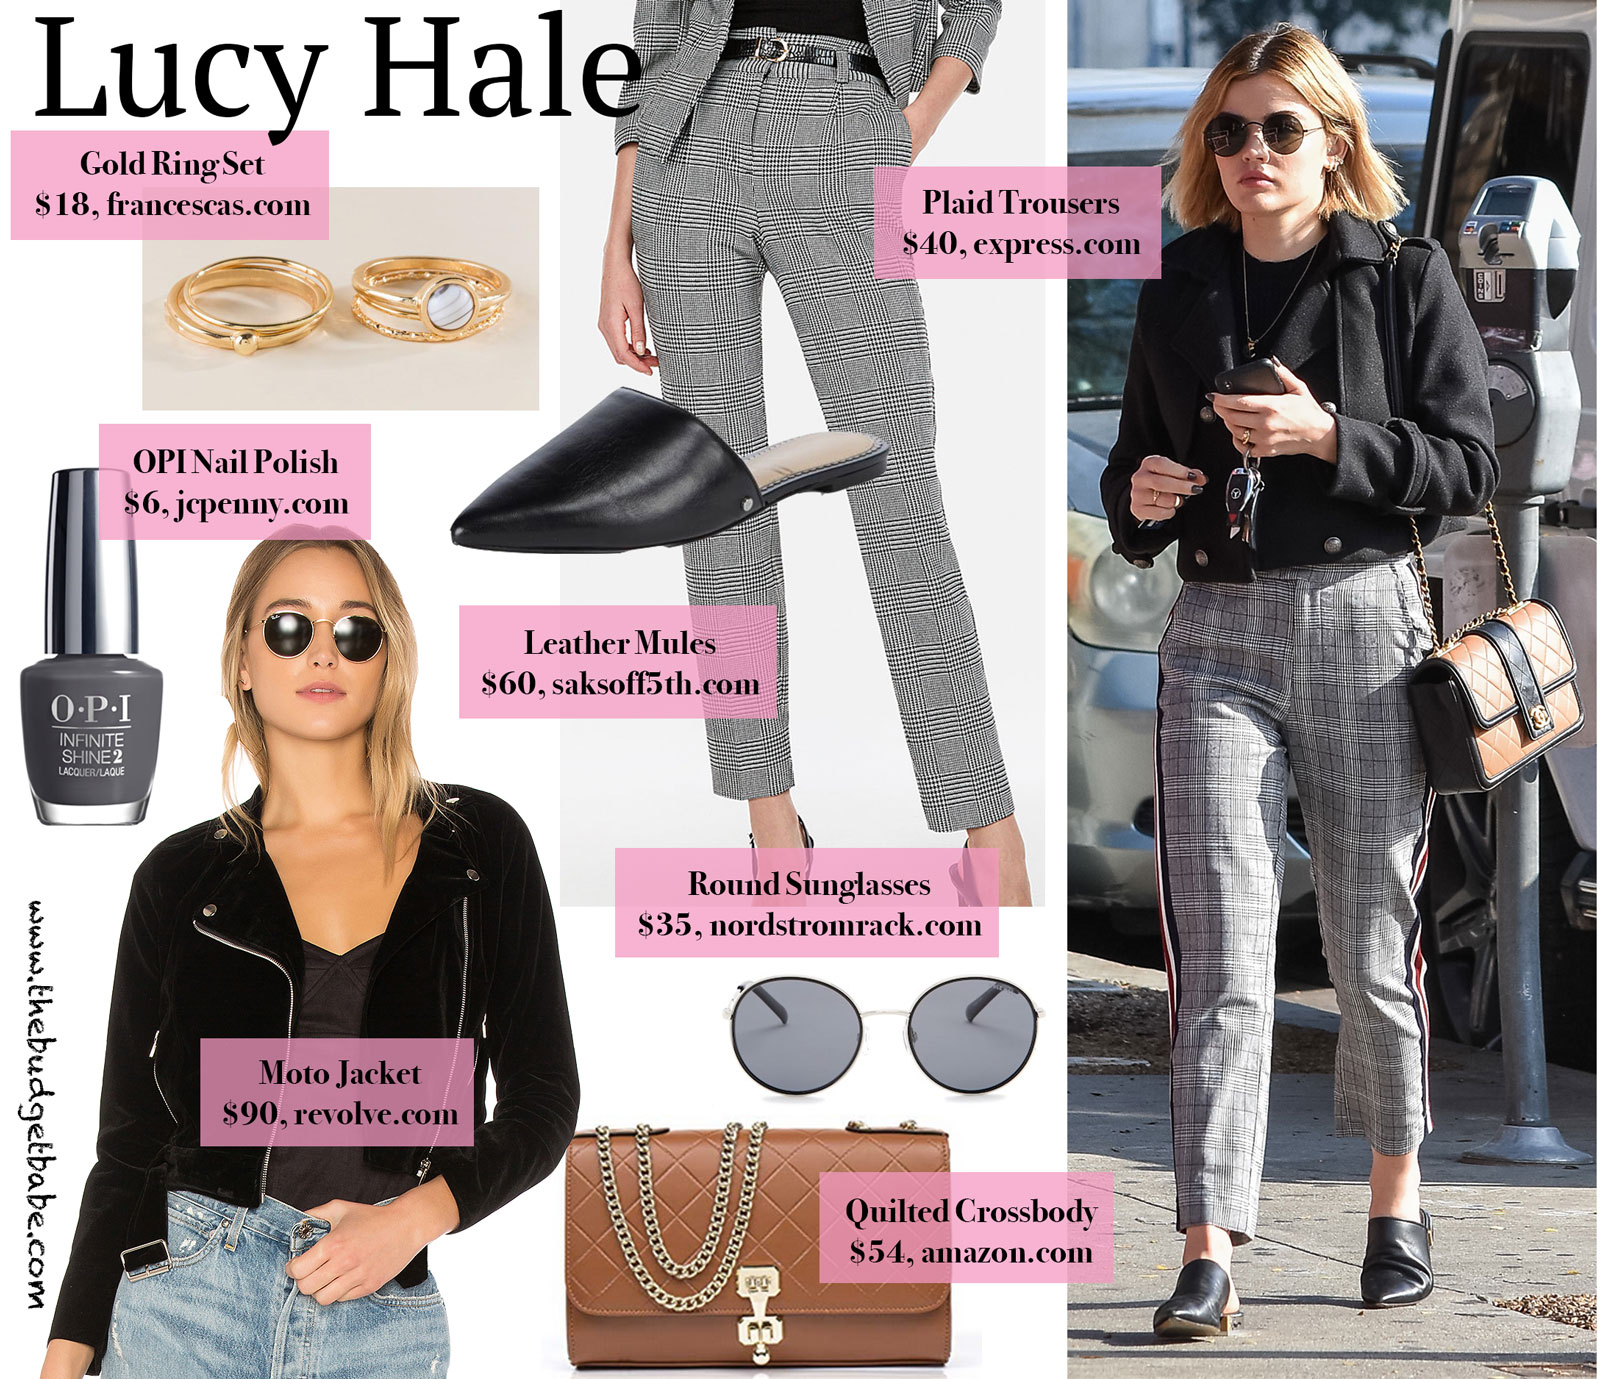 e0886f9f383b Lucy Hale's Cropped Pea Coat, Chanel Bag, and Plaid Trousers.